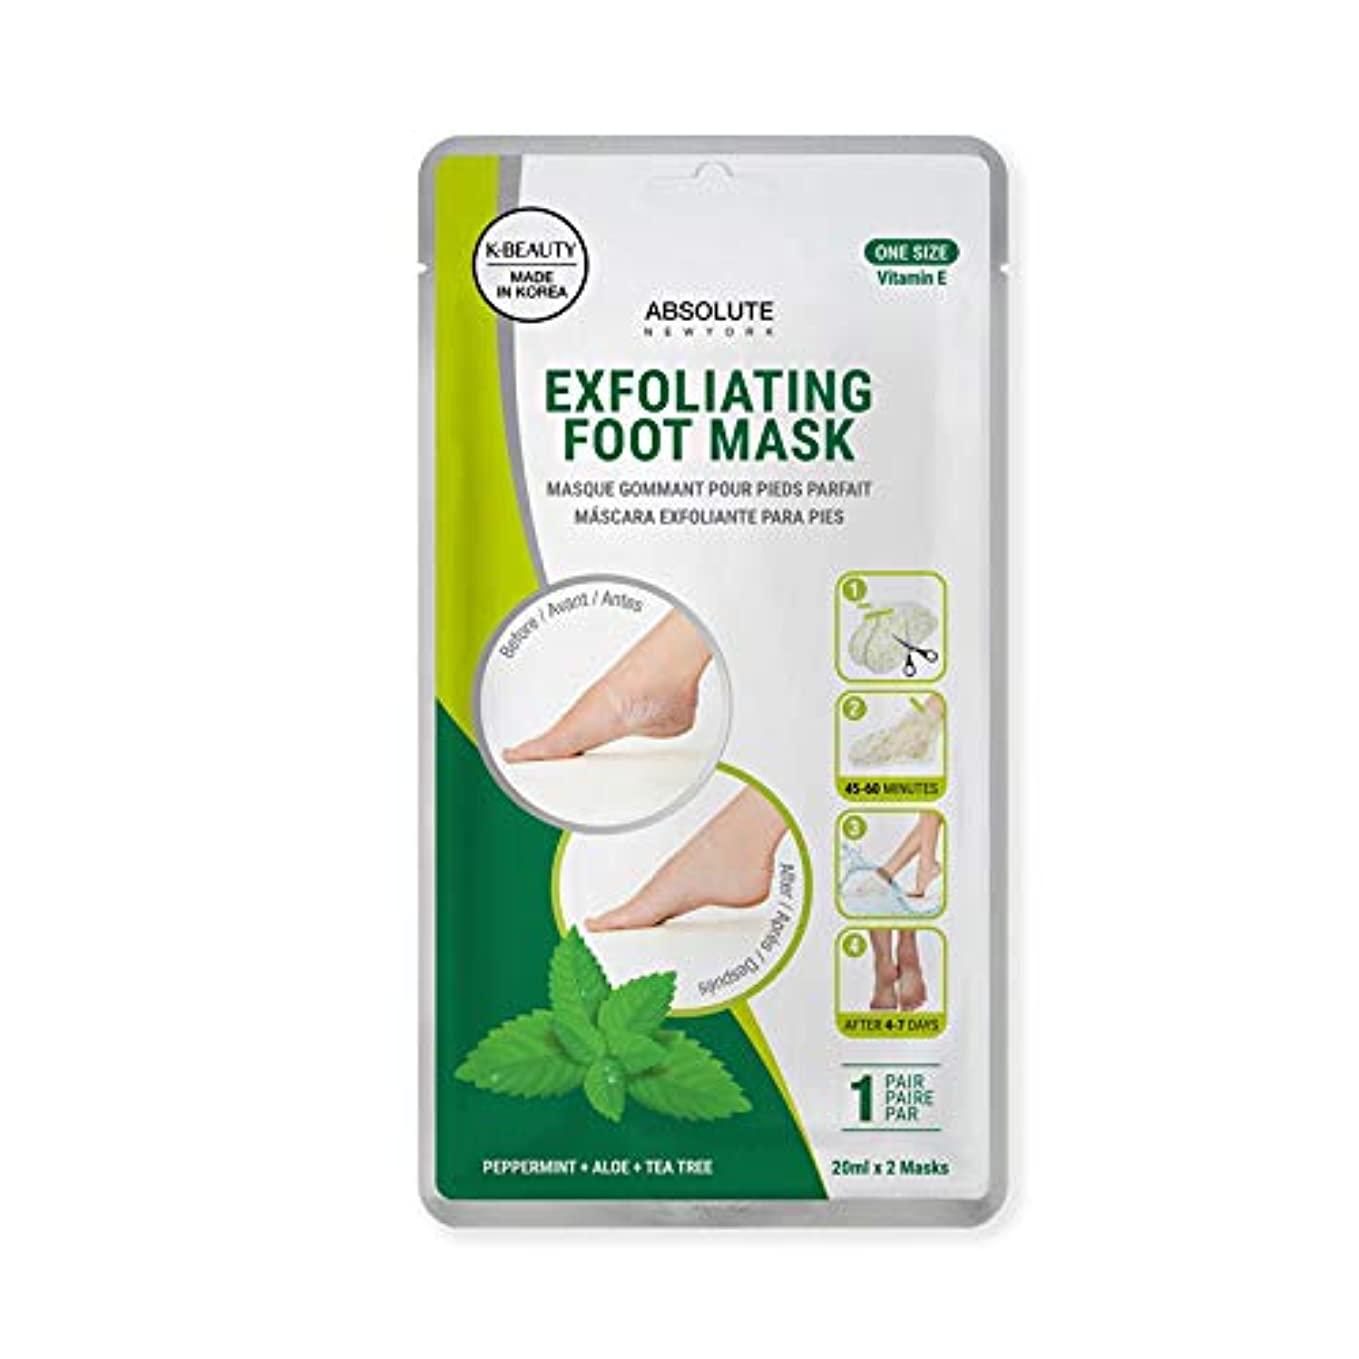 憤る不振アルファベット(3 Pack) ABSOLUTE Exfoliating Foot Mask - Peppermint + Aloe + Tea Tree (並行輸入品)